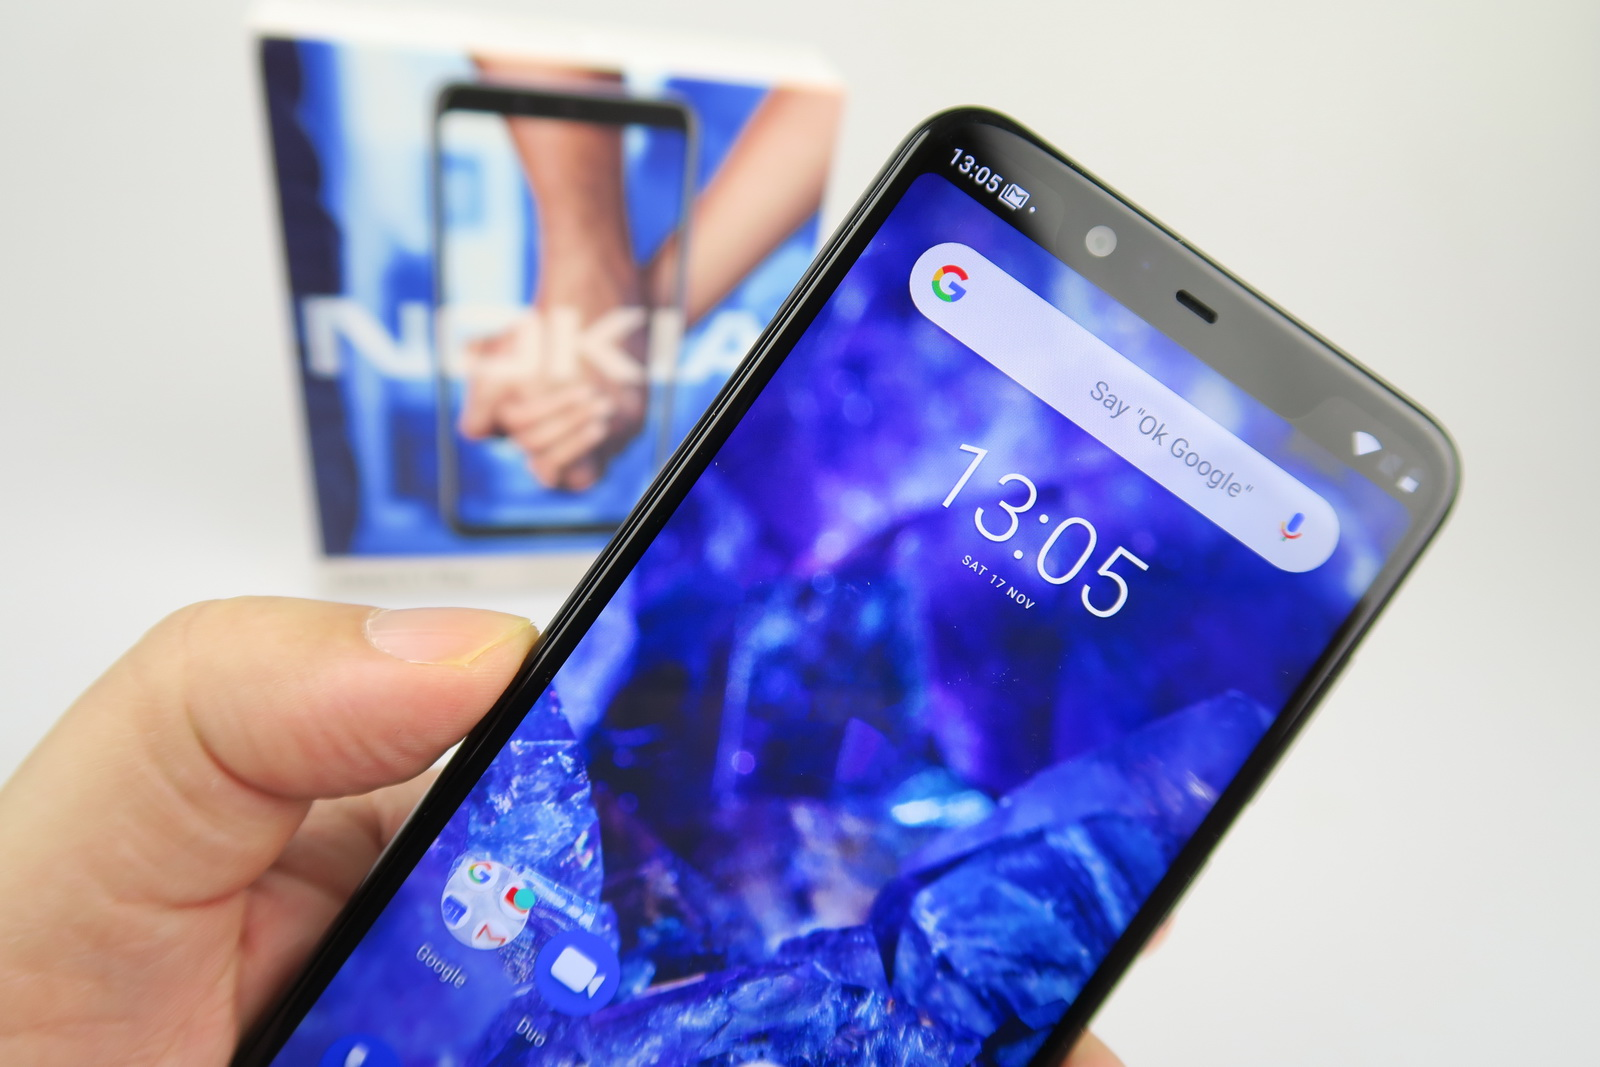 Nokia 5.1 Plus Unboxing: primul Nokia cu breton, are procesor MediaTek si suport AI (Video)